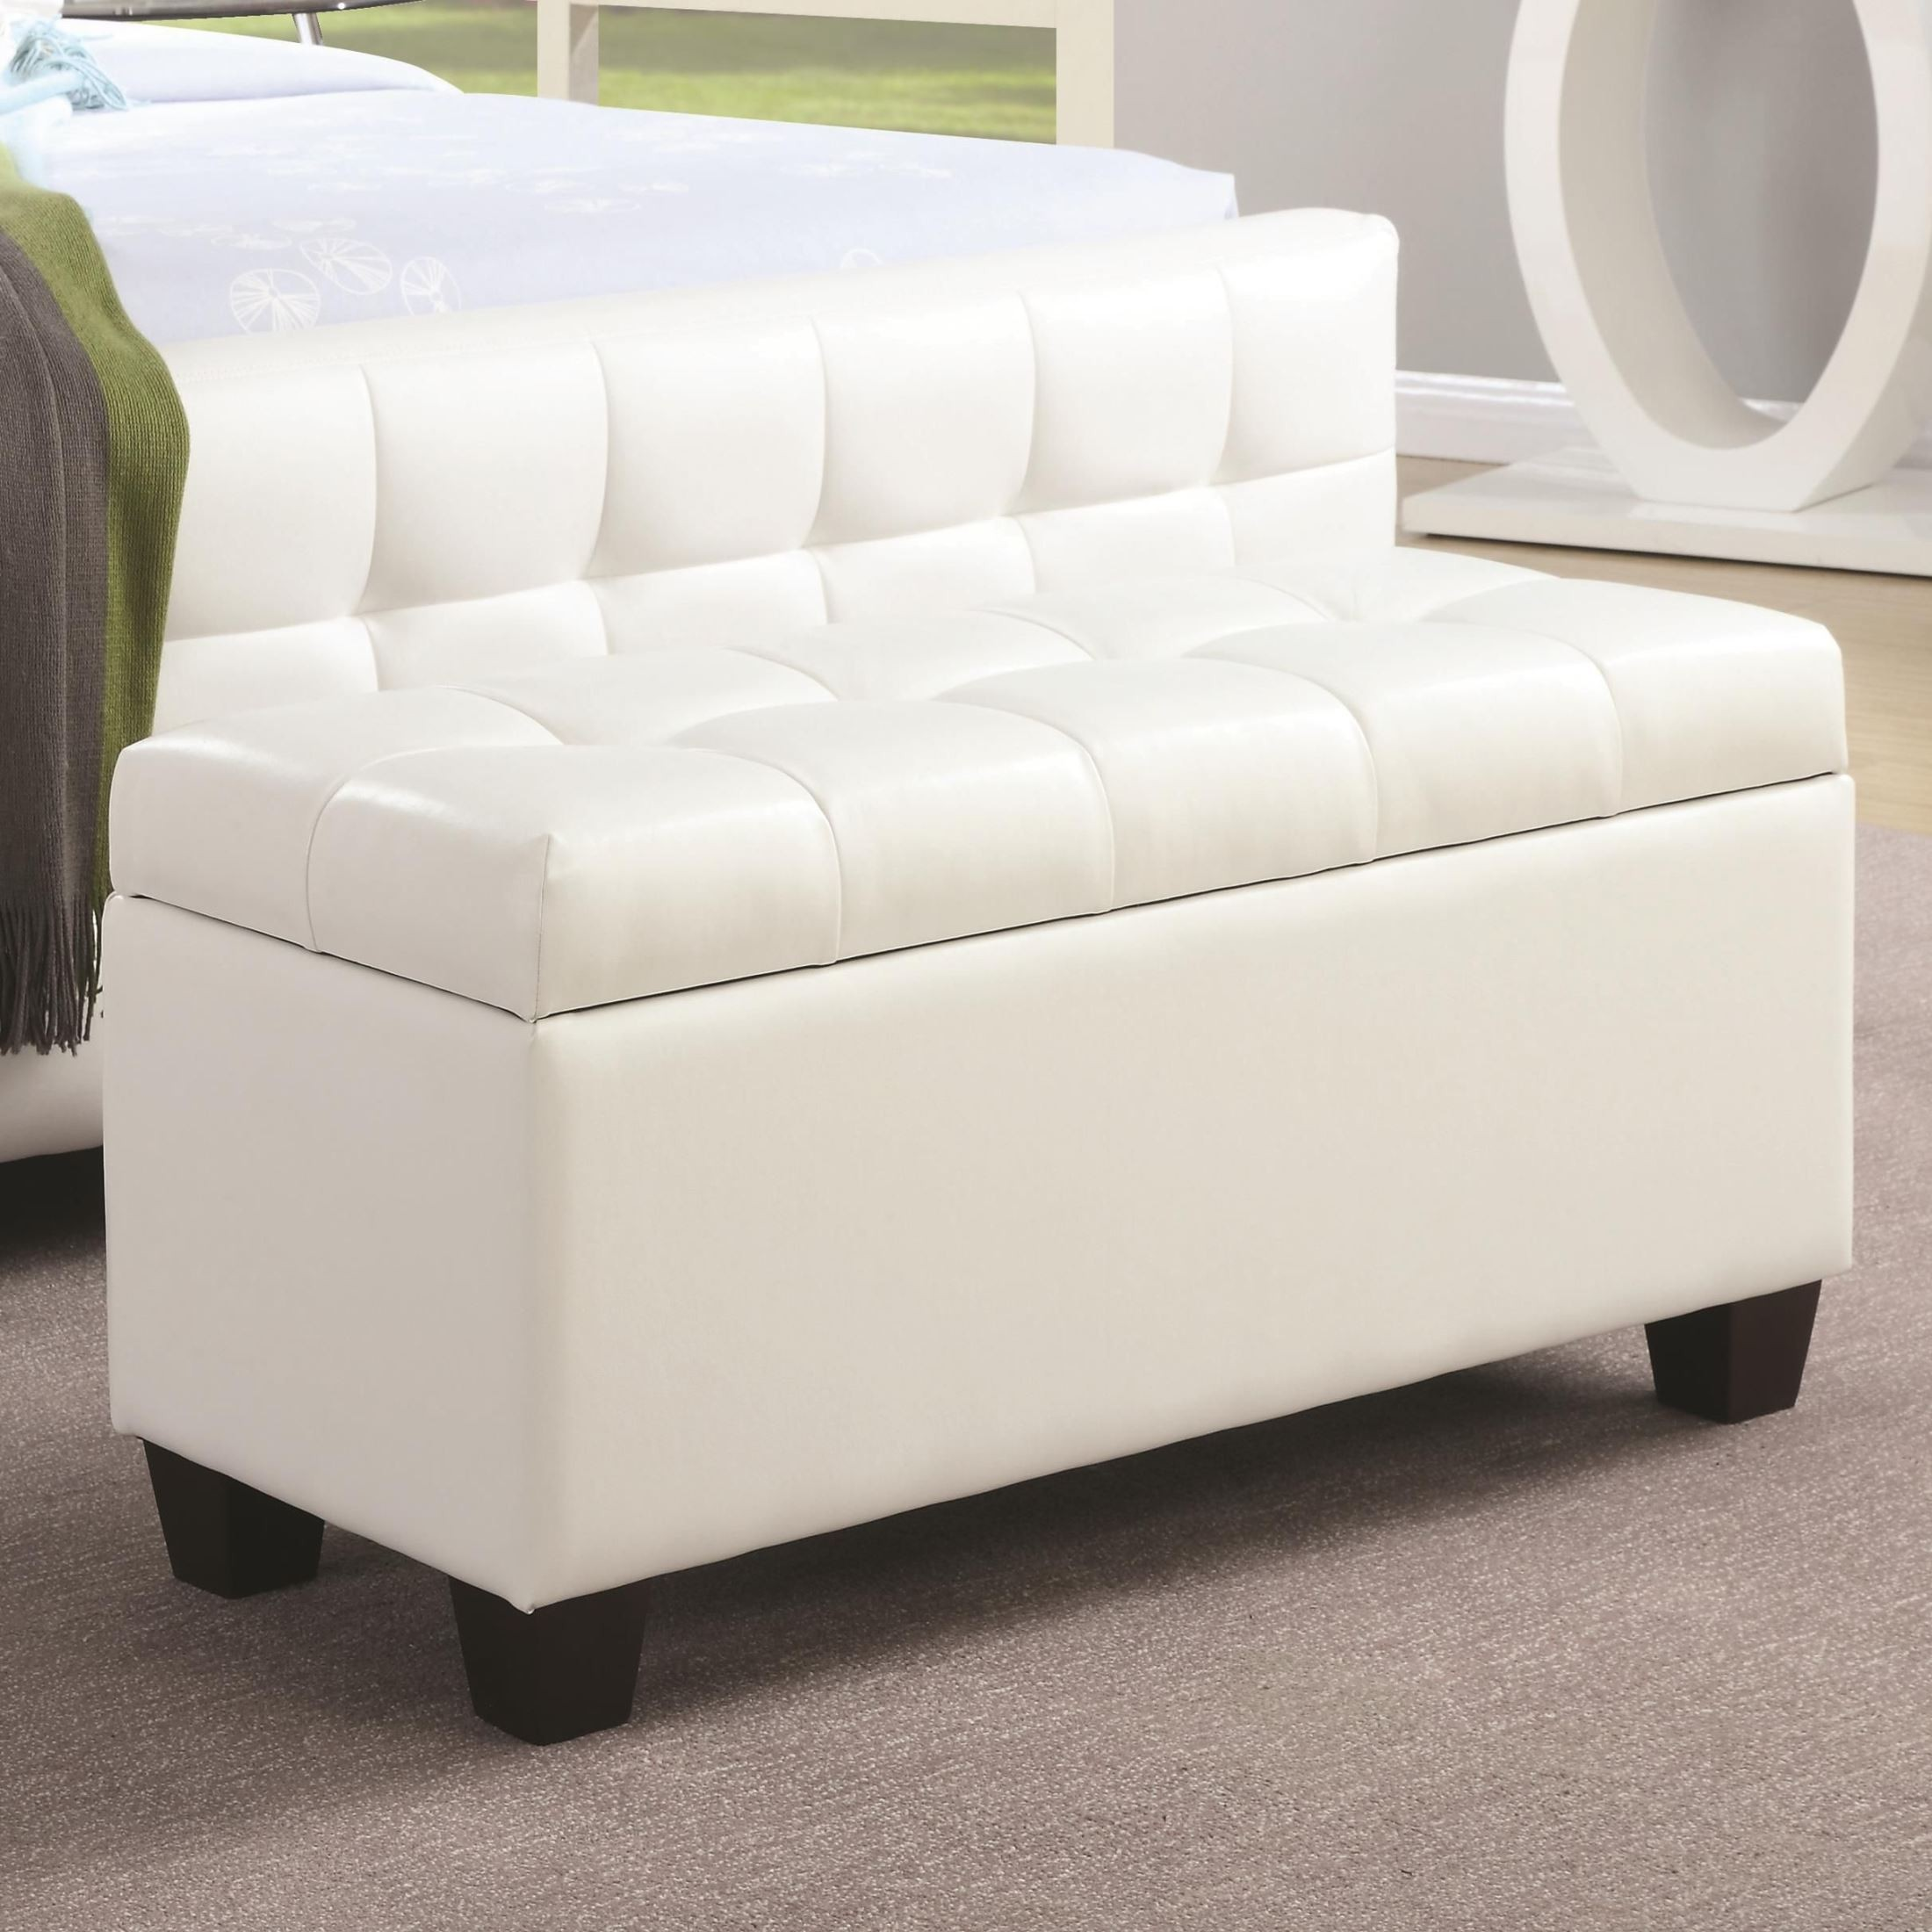 500129 White Faux Leather Rectangular Storage Bench From Coaster 500129 Coleman Furniture